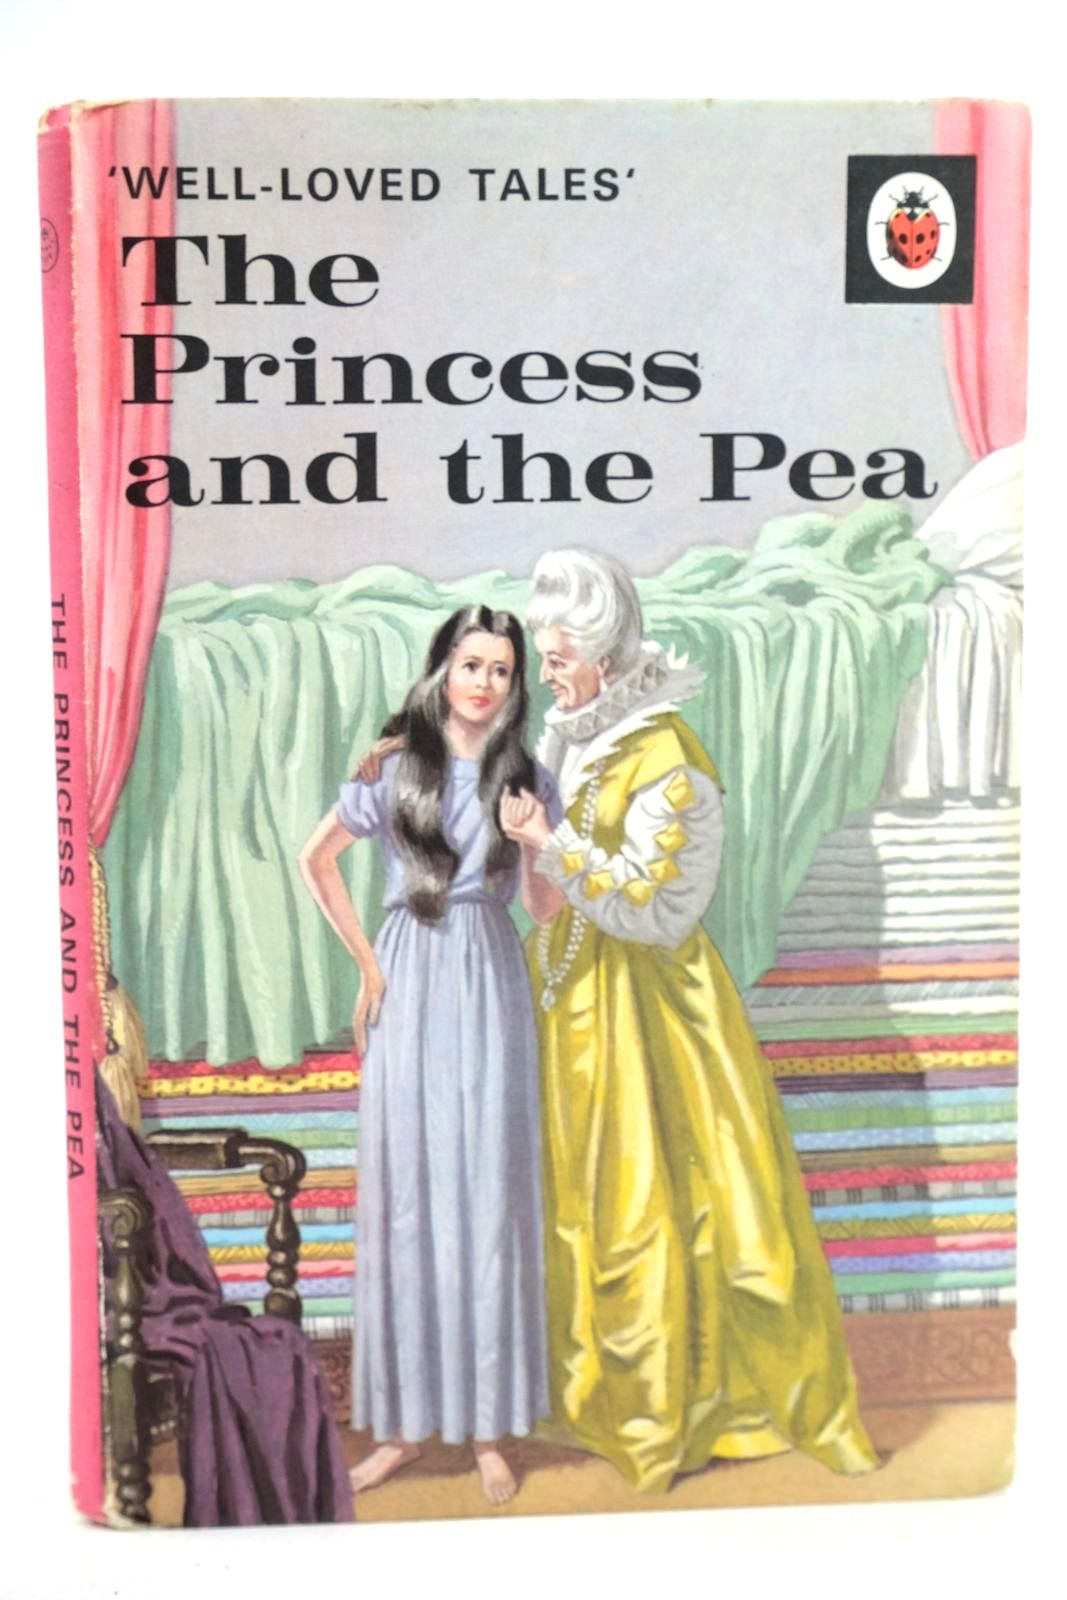 Photo of THE PRINCESS AND THE PEA written by Southgate, Vera illustrated by Winter, Eric published by Wills & Hepworth Ltd. (STOCK CODE: 1318837)  for sale by Stella & Rose's Books